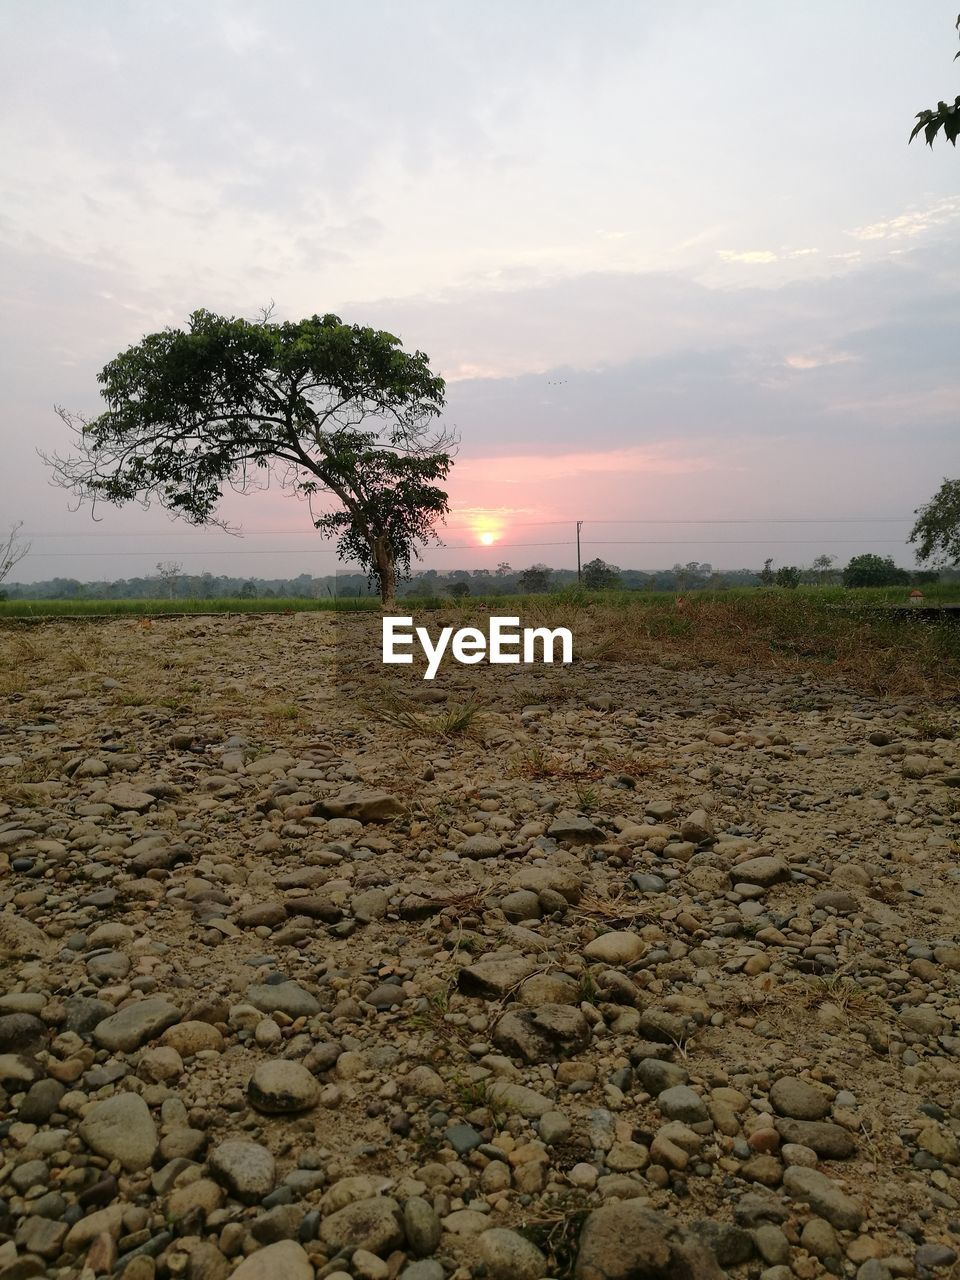 tree, landscape, nature, sky, tranquility, tranquil scene, beauty in nature, cloud - sky, scenics, sunset, no people, field, outdoors, day